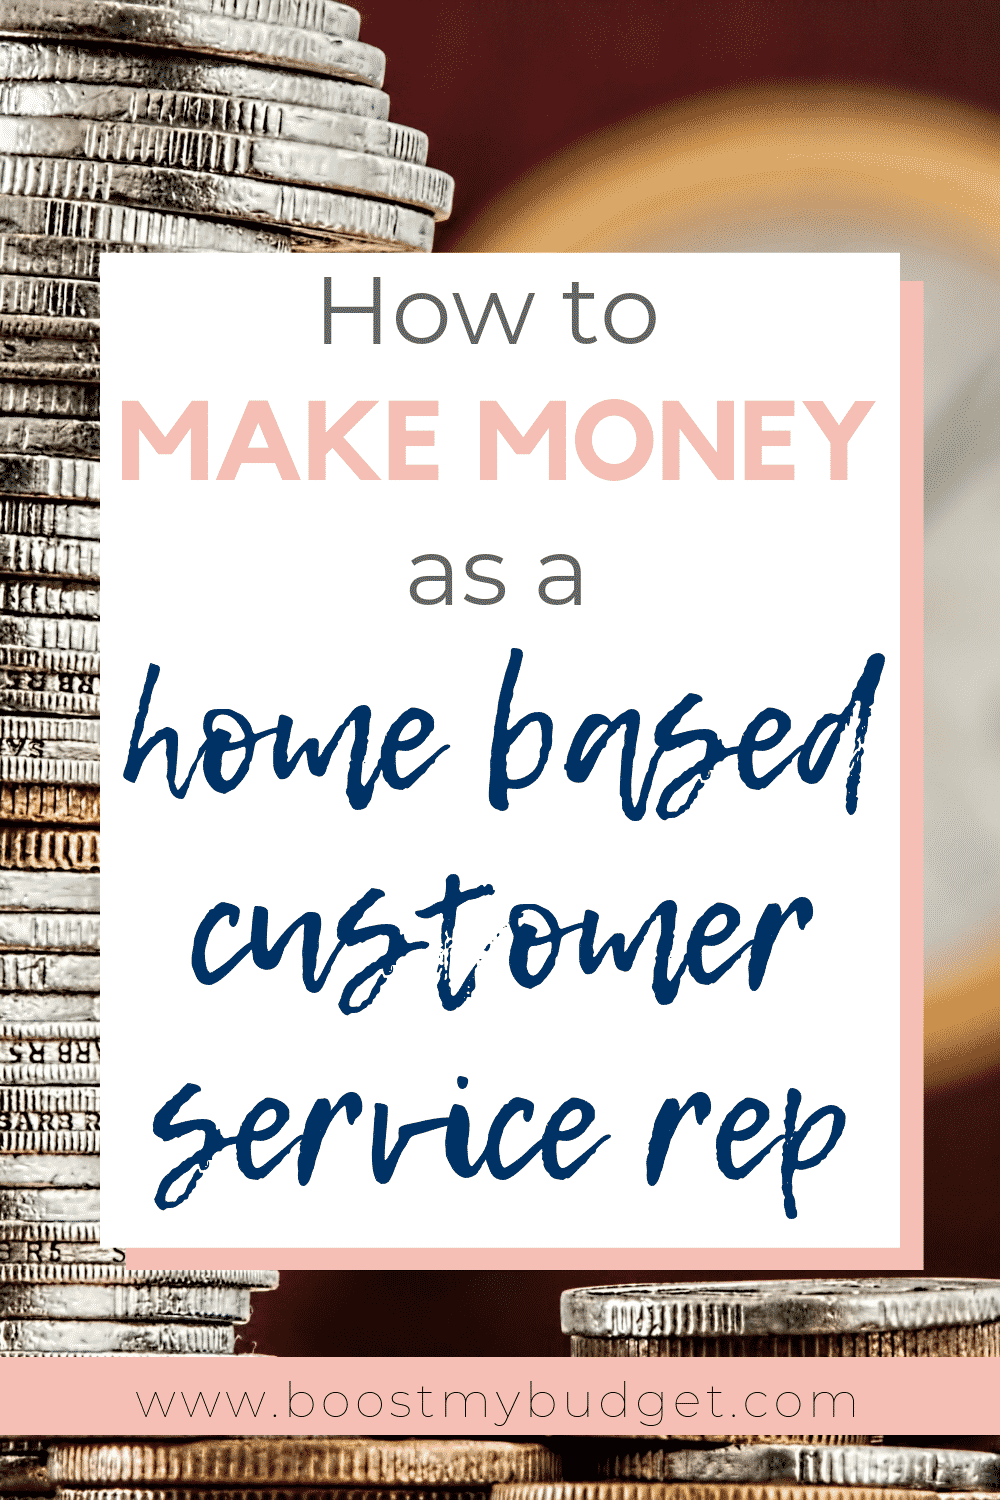 How to make money from home as a customer service rep! This is a perfect way for stay at home mums to earn extra money. Find out more in this post!